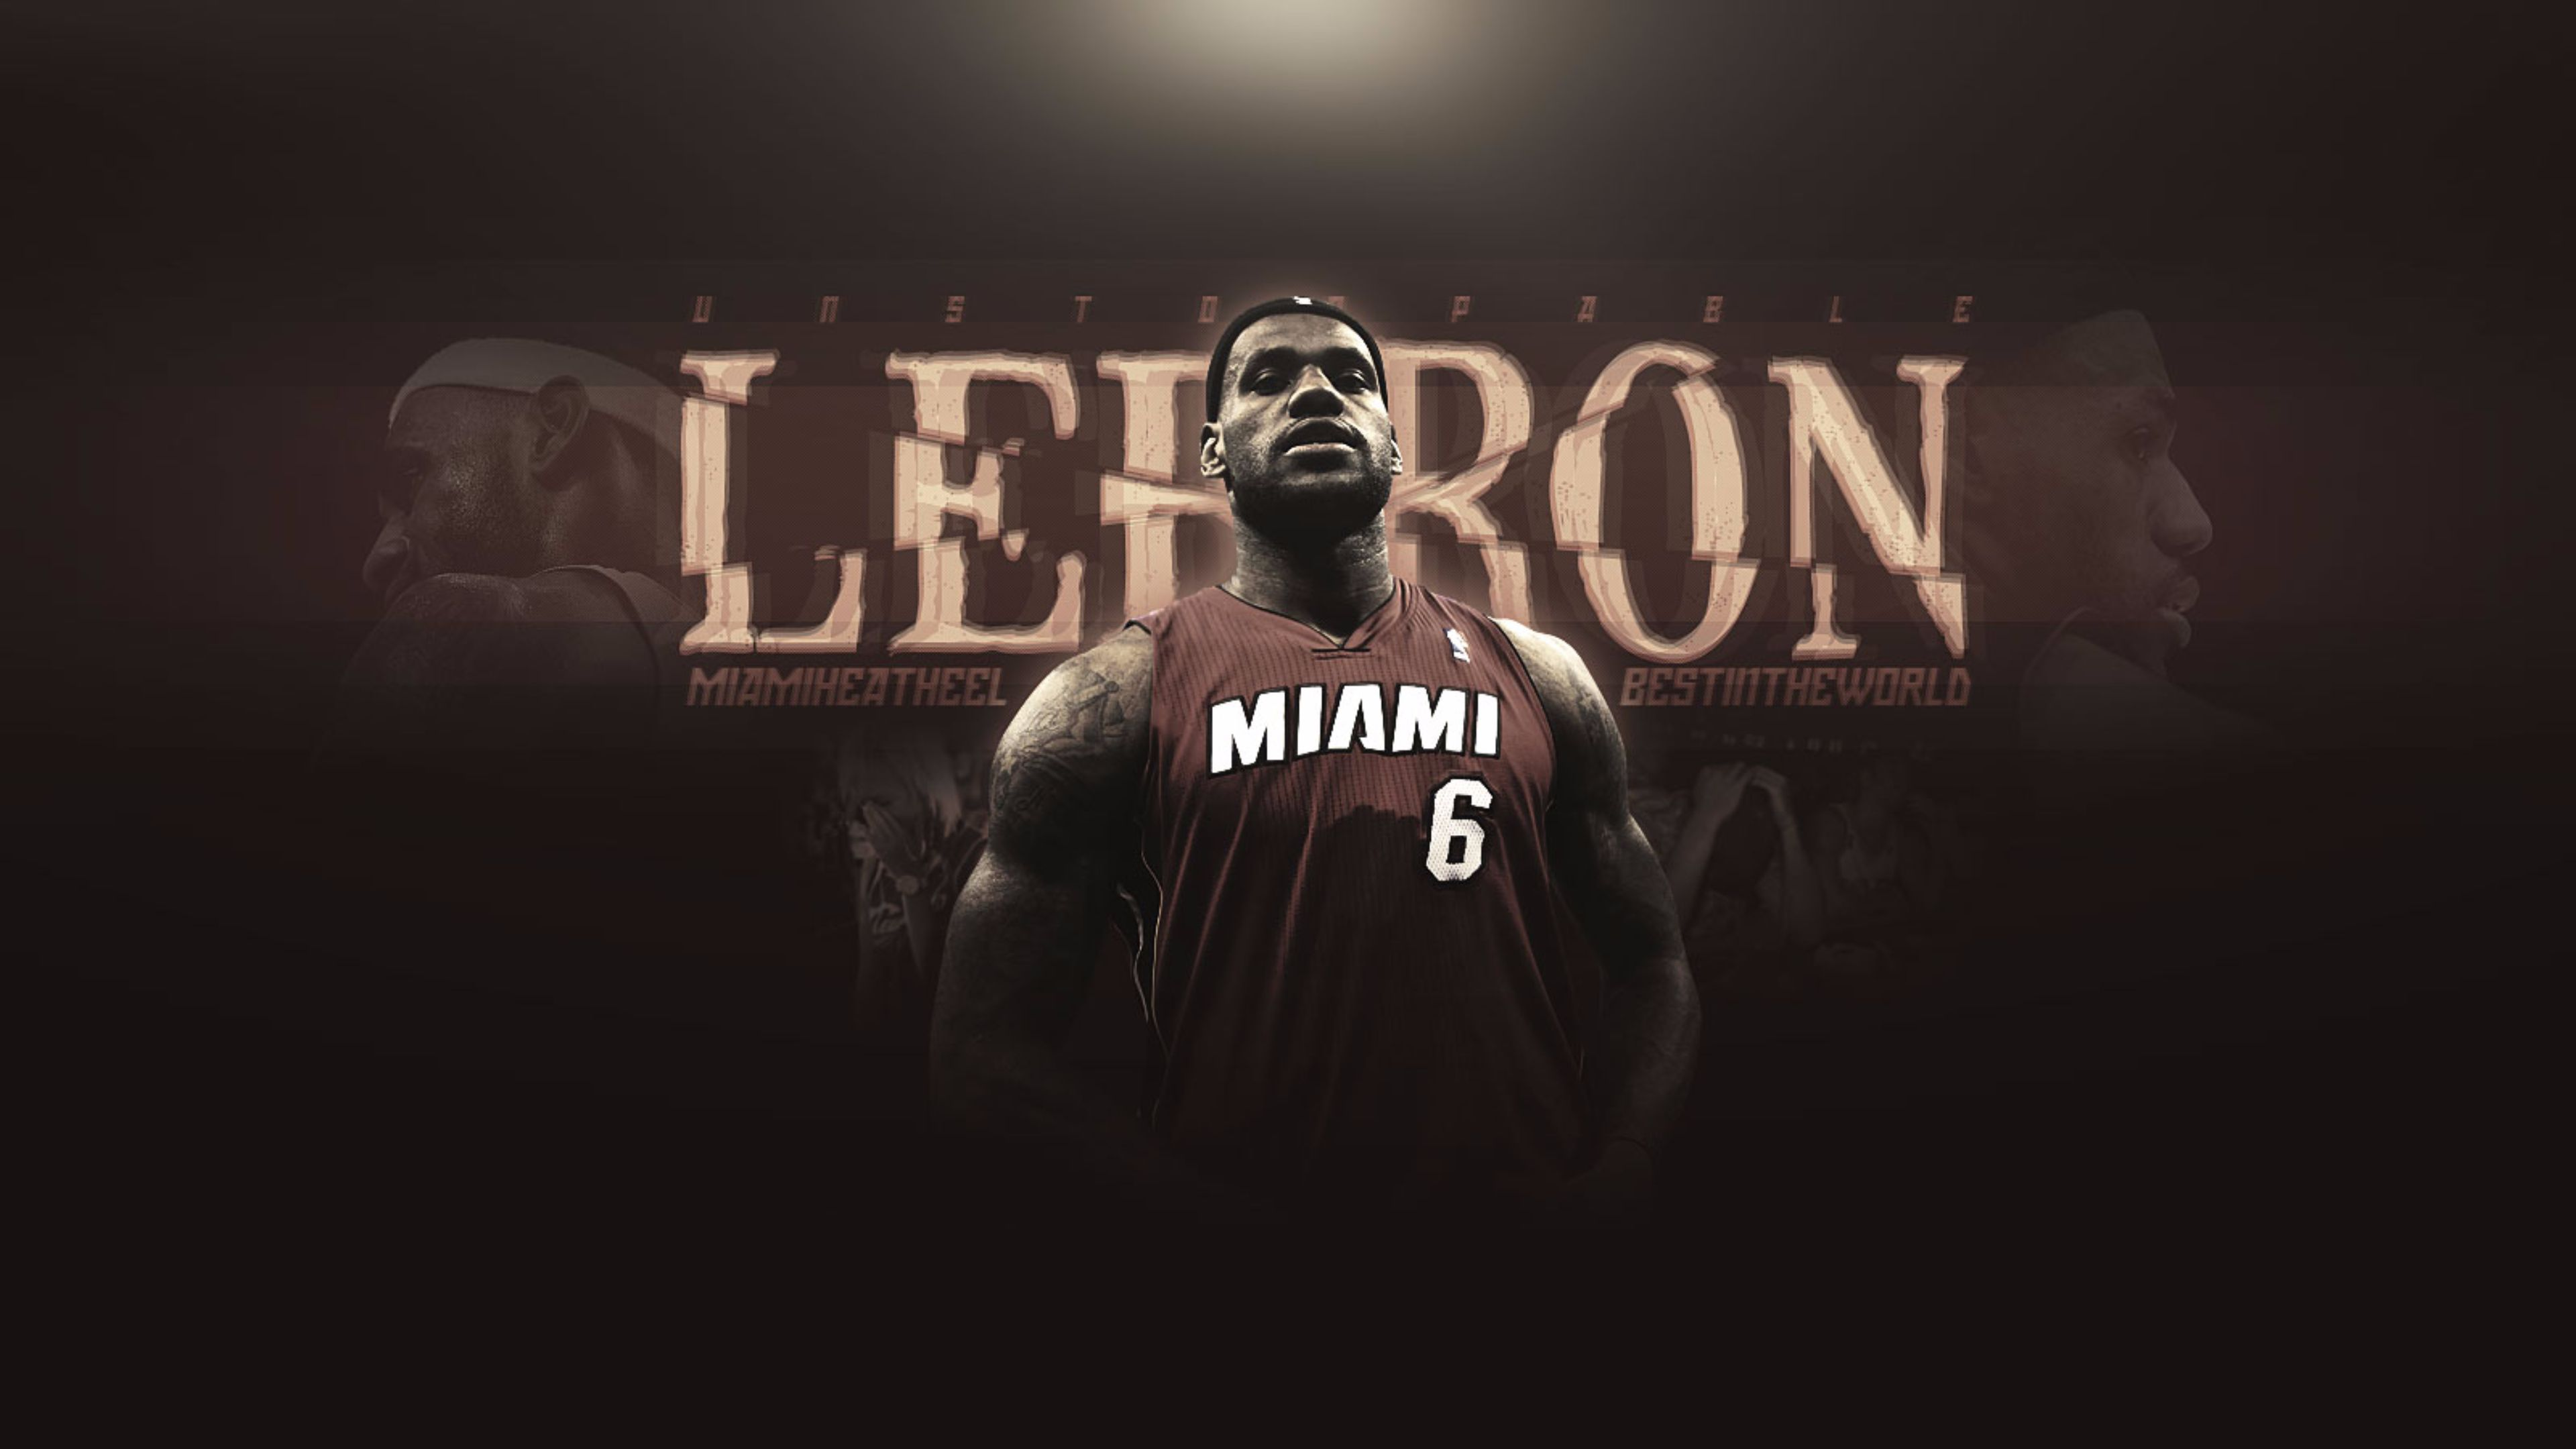 Page 2 Of Miami 4k Wallpapers For Your Desktop Or Mobile Screen